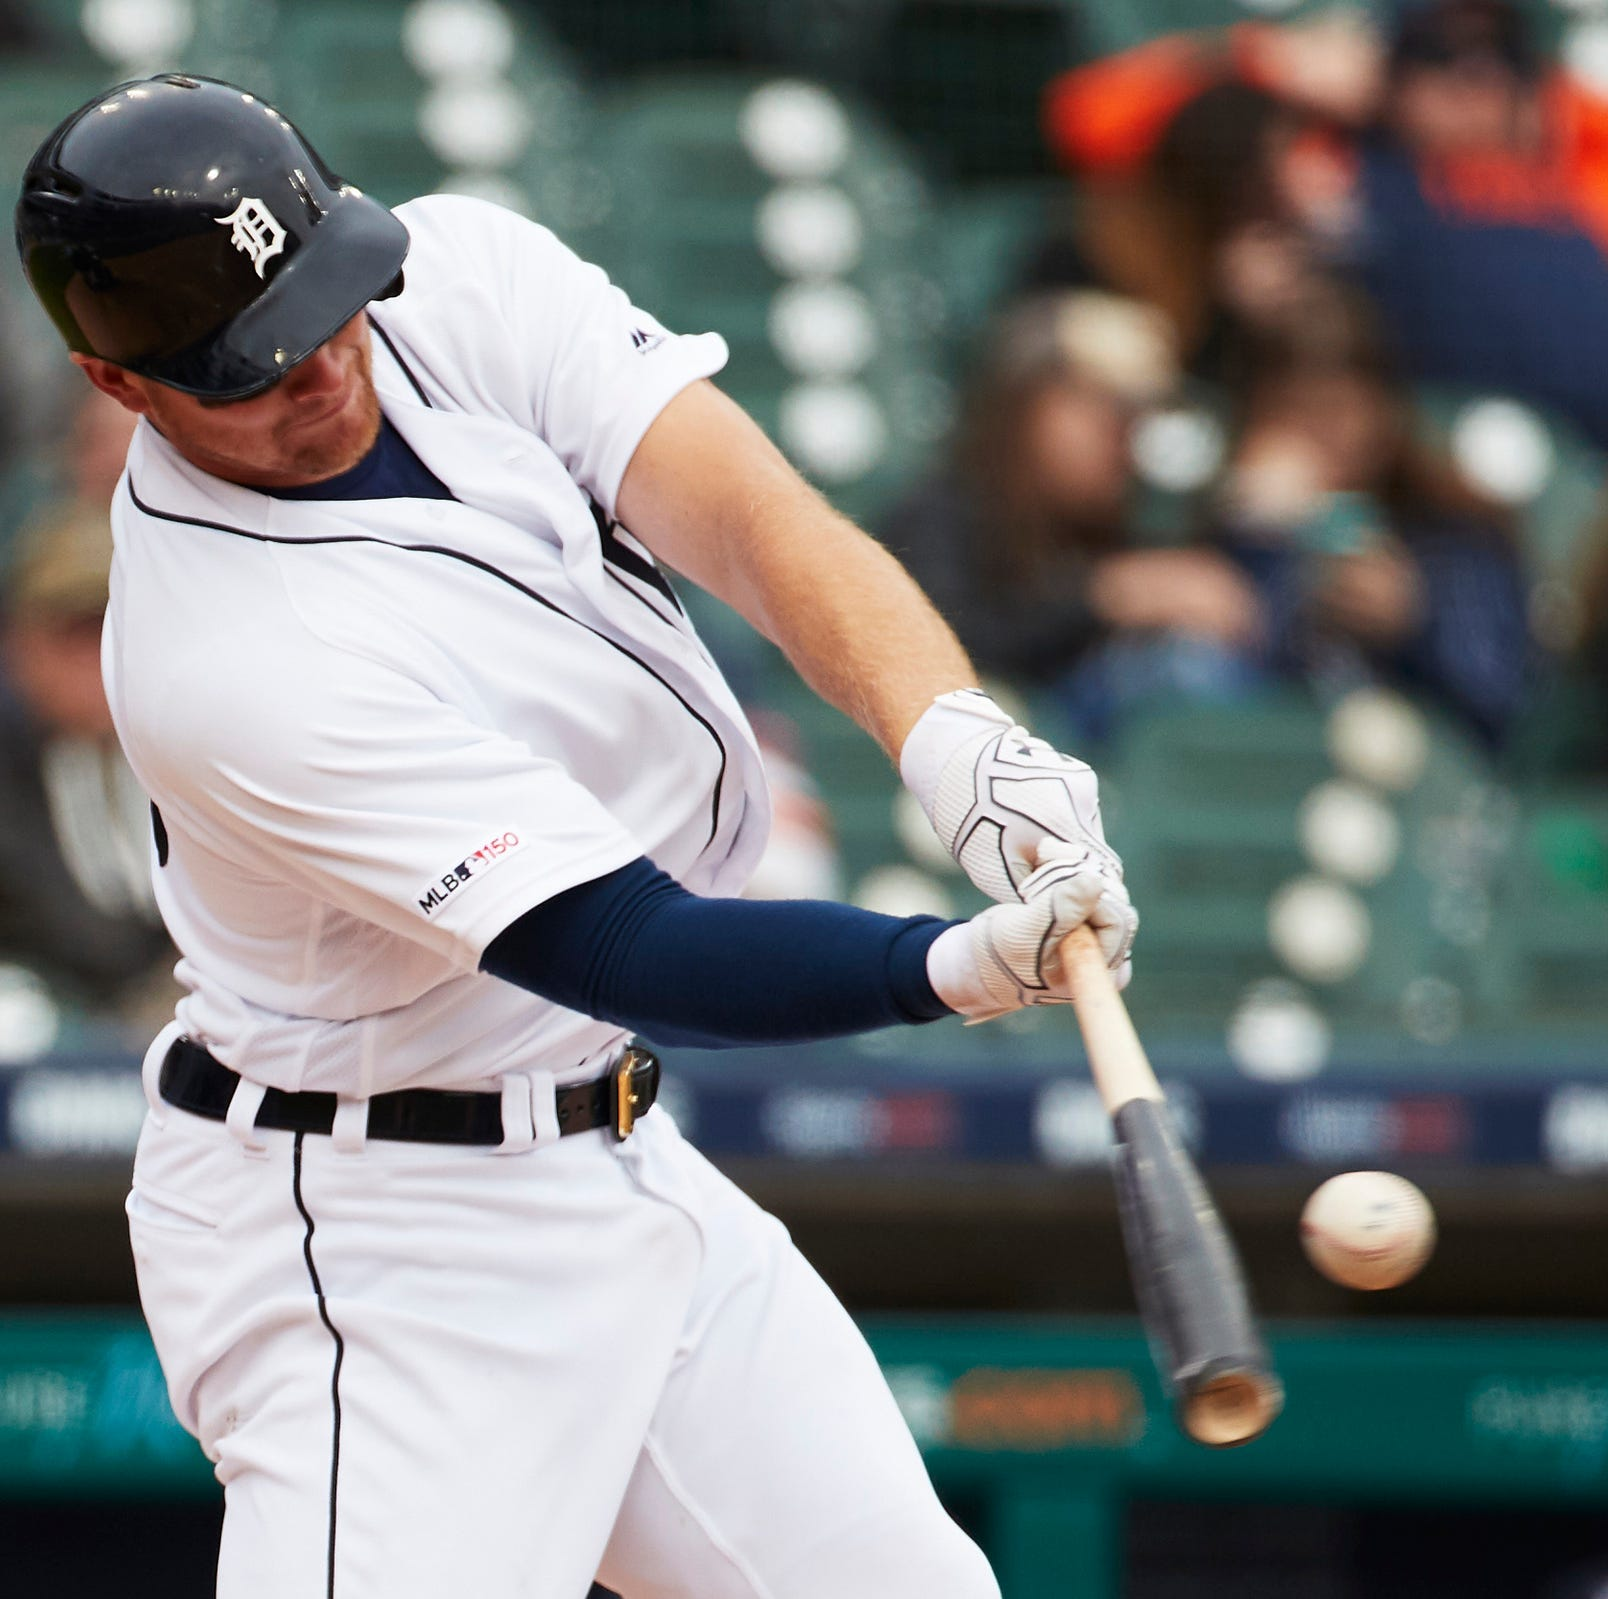 Detroit Tigers' win on Wednesday showed they learned from Tuesday's loss